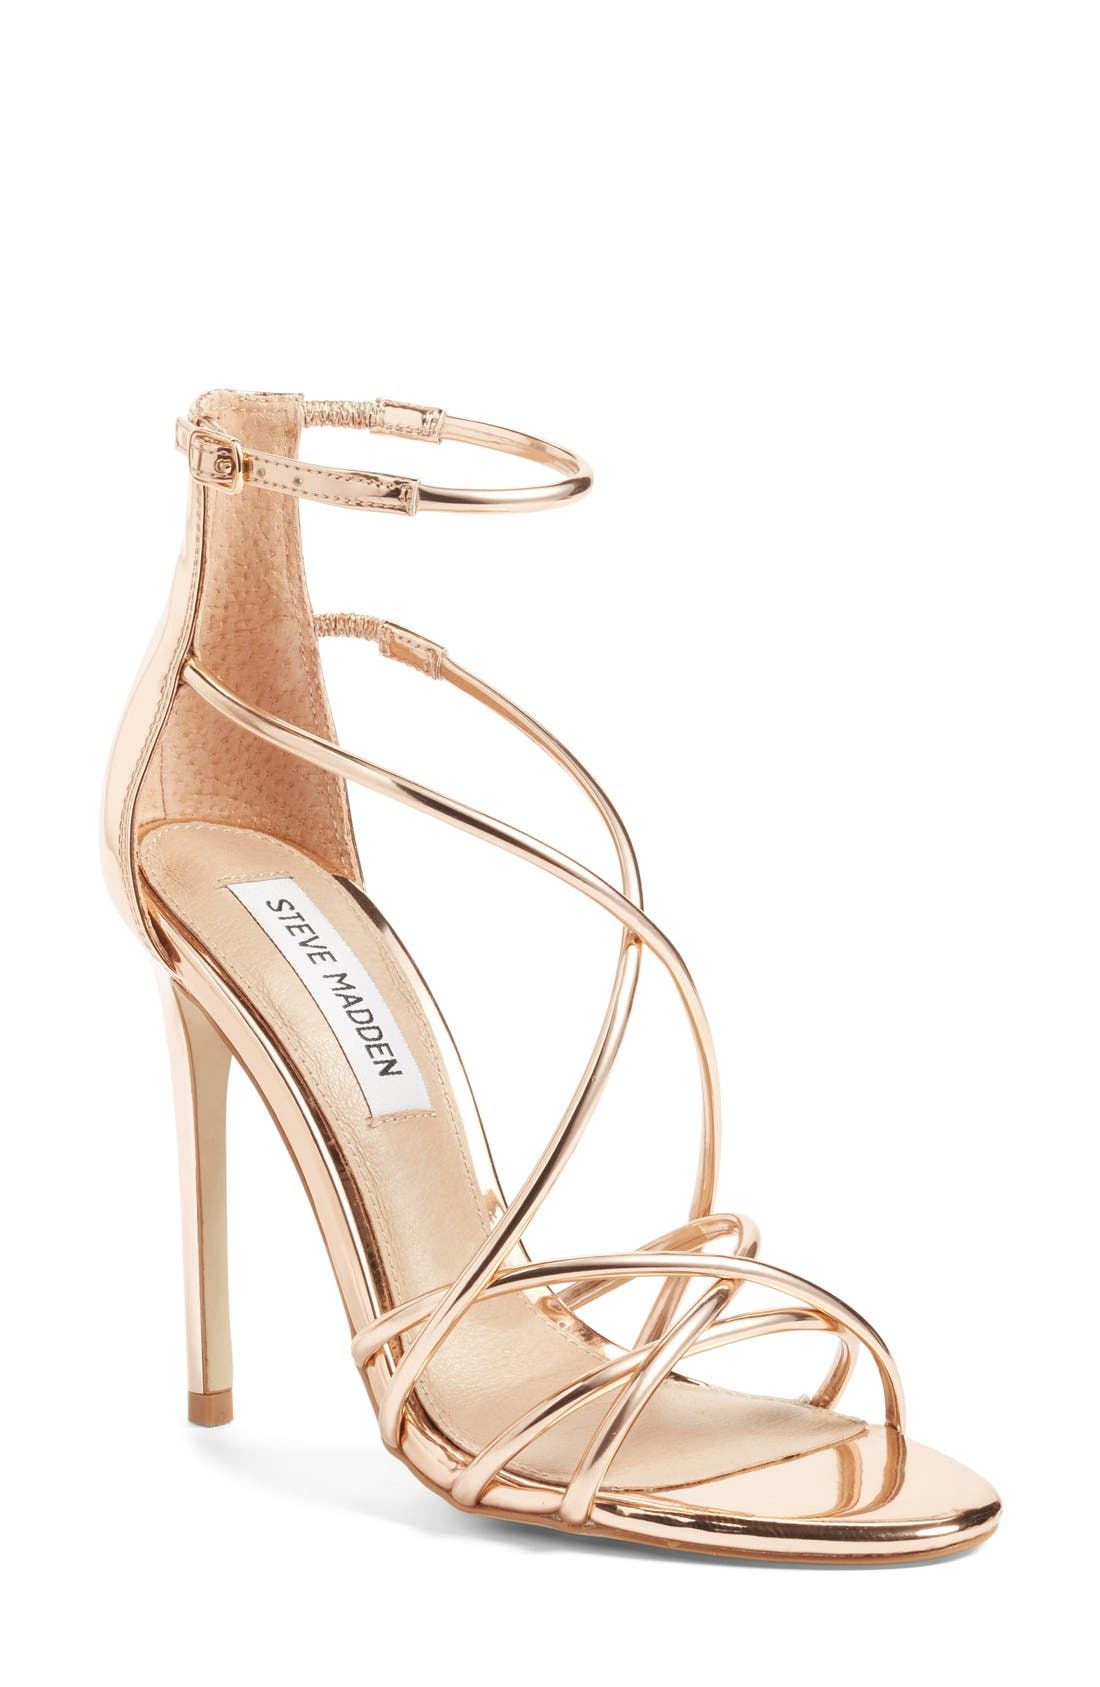 Alternate Image 1 Selected - Steve Madden Satire Strappy Sandal (Women)